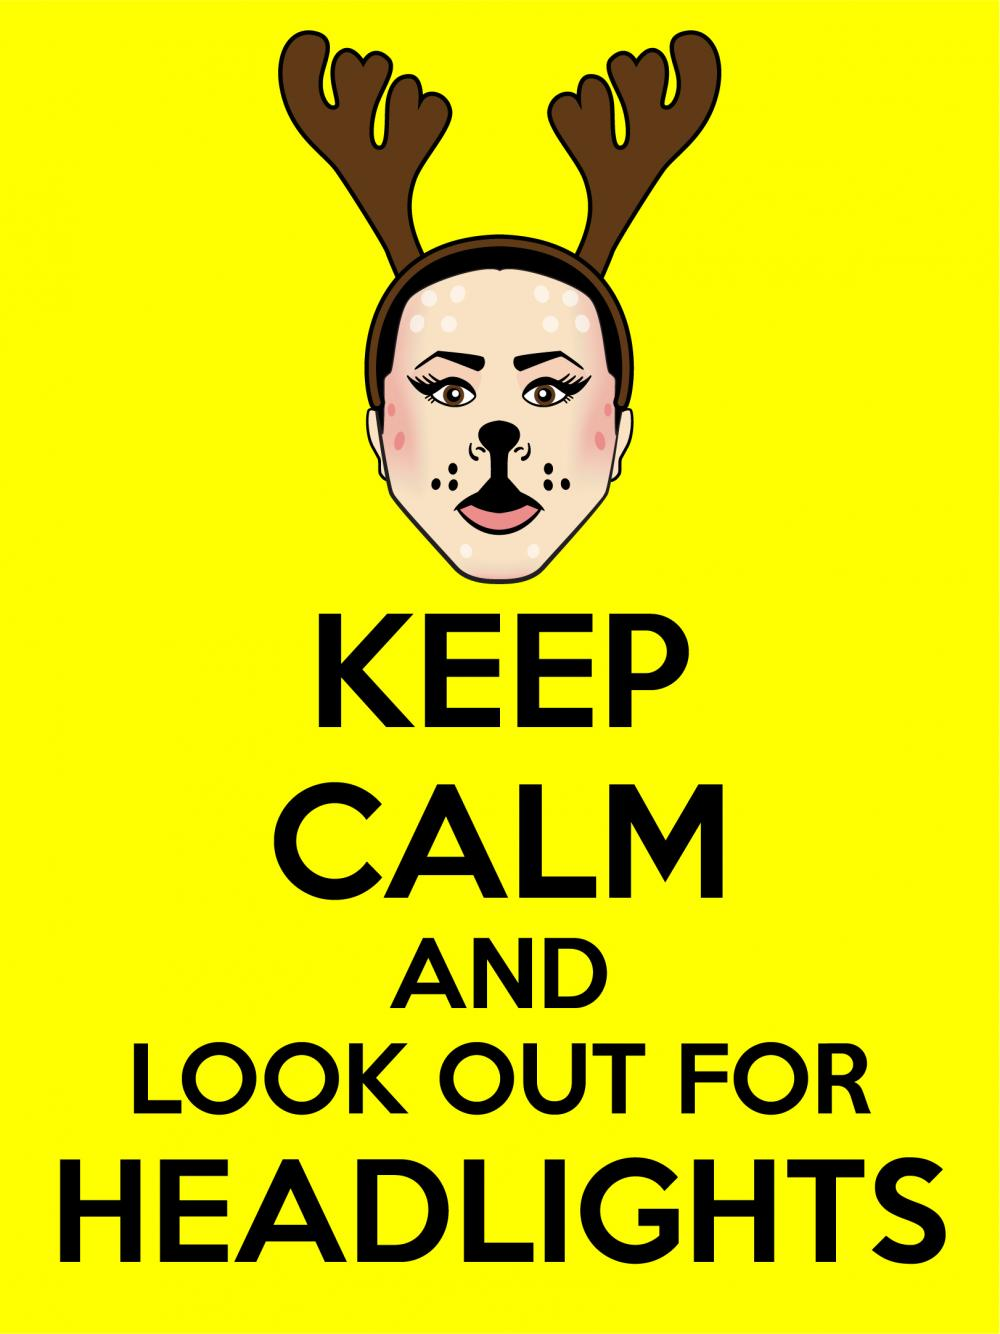 I was inspired by a Fellow Tooner to create another Keep Calm poster, this one features Deer.